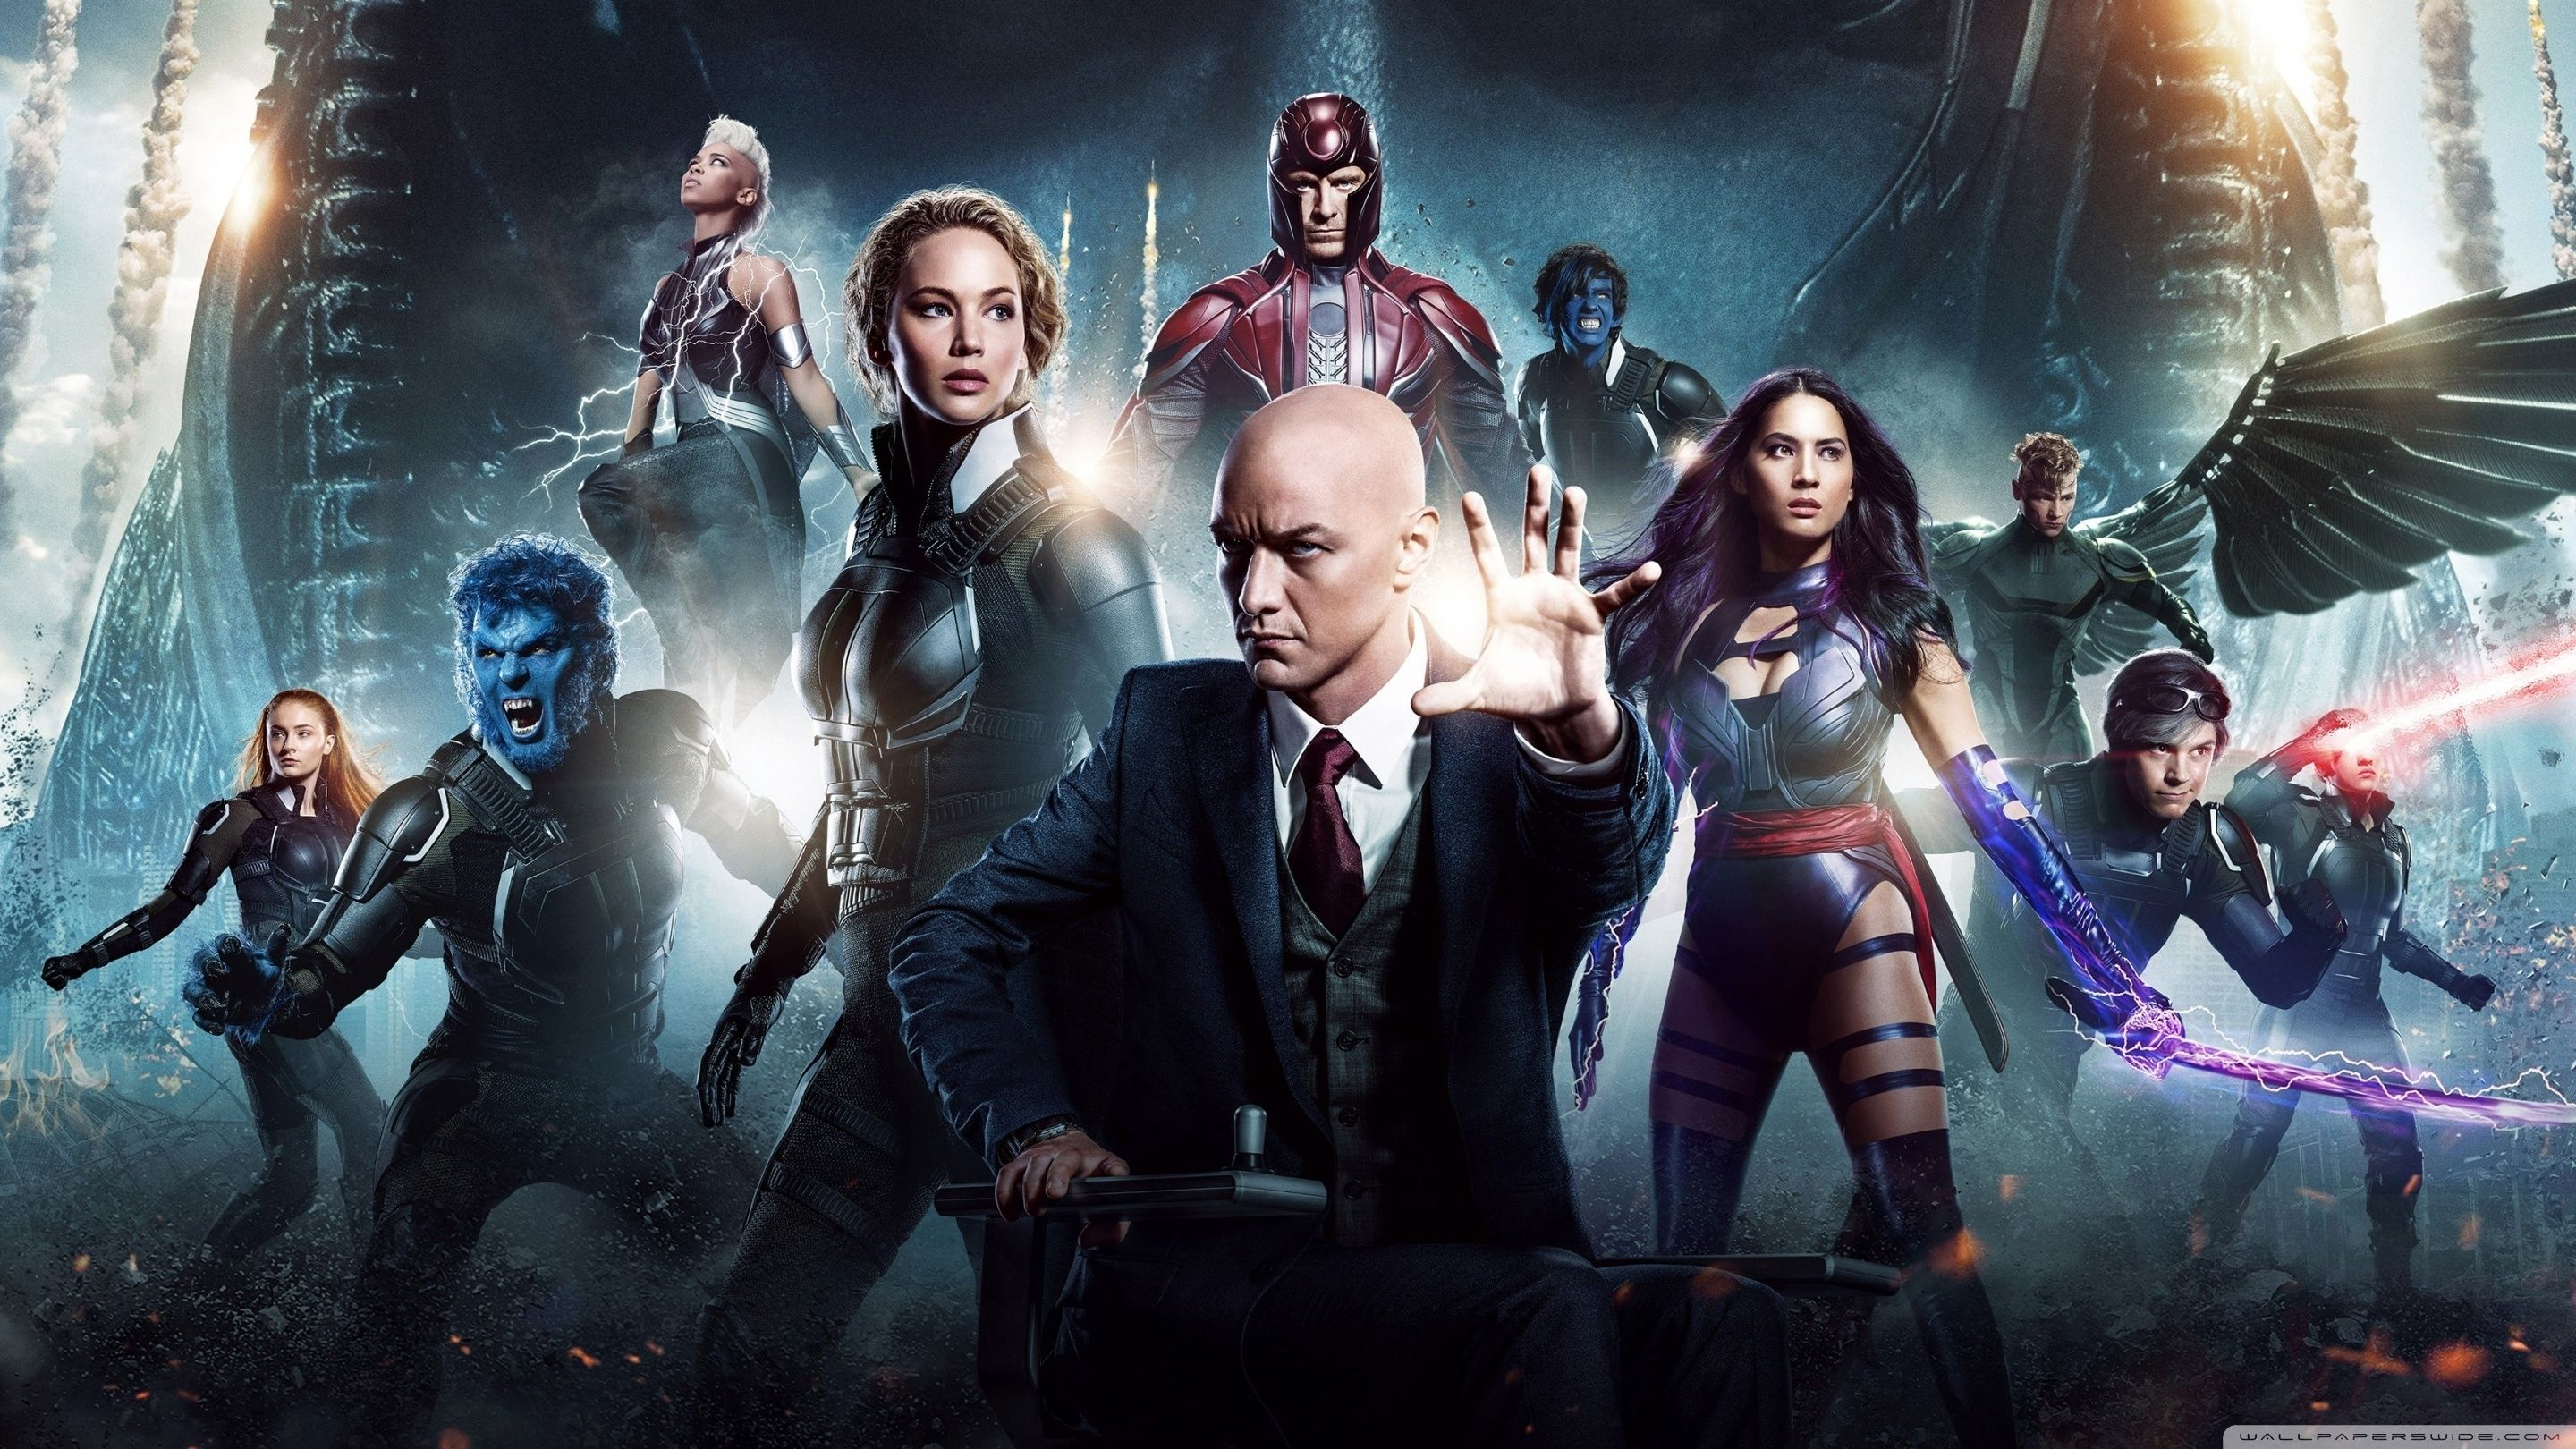 10 New X Men Apocalypse 4k Wallpaper Full Hd 1080p For Pc